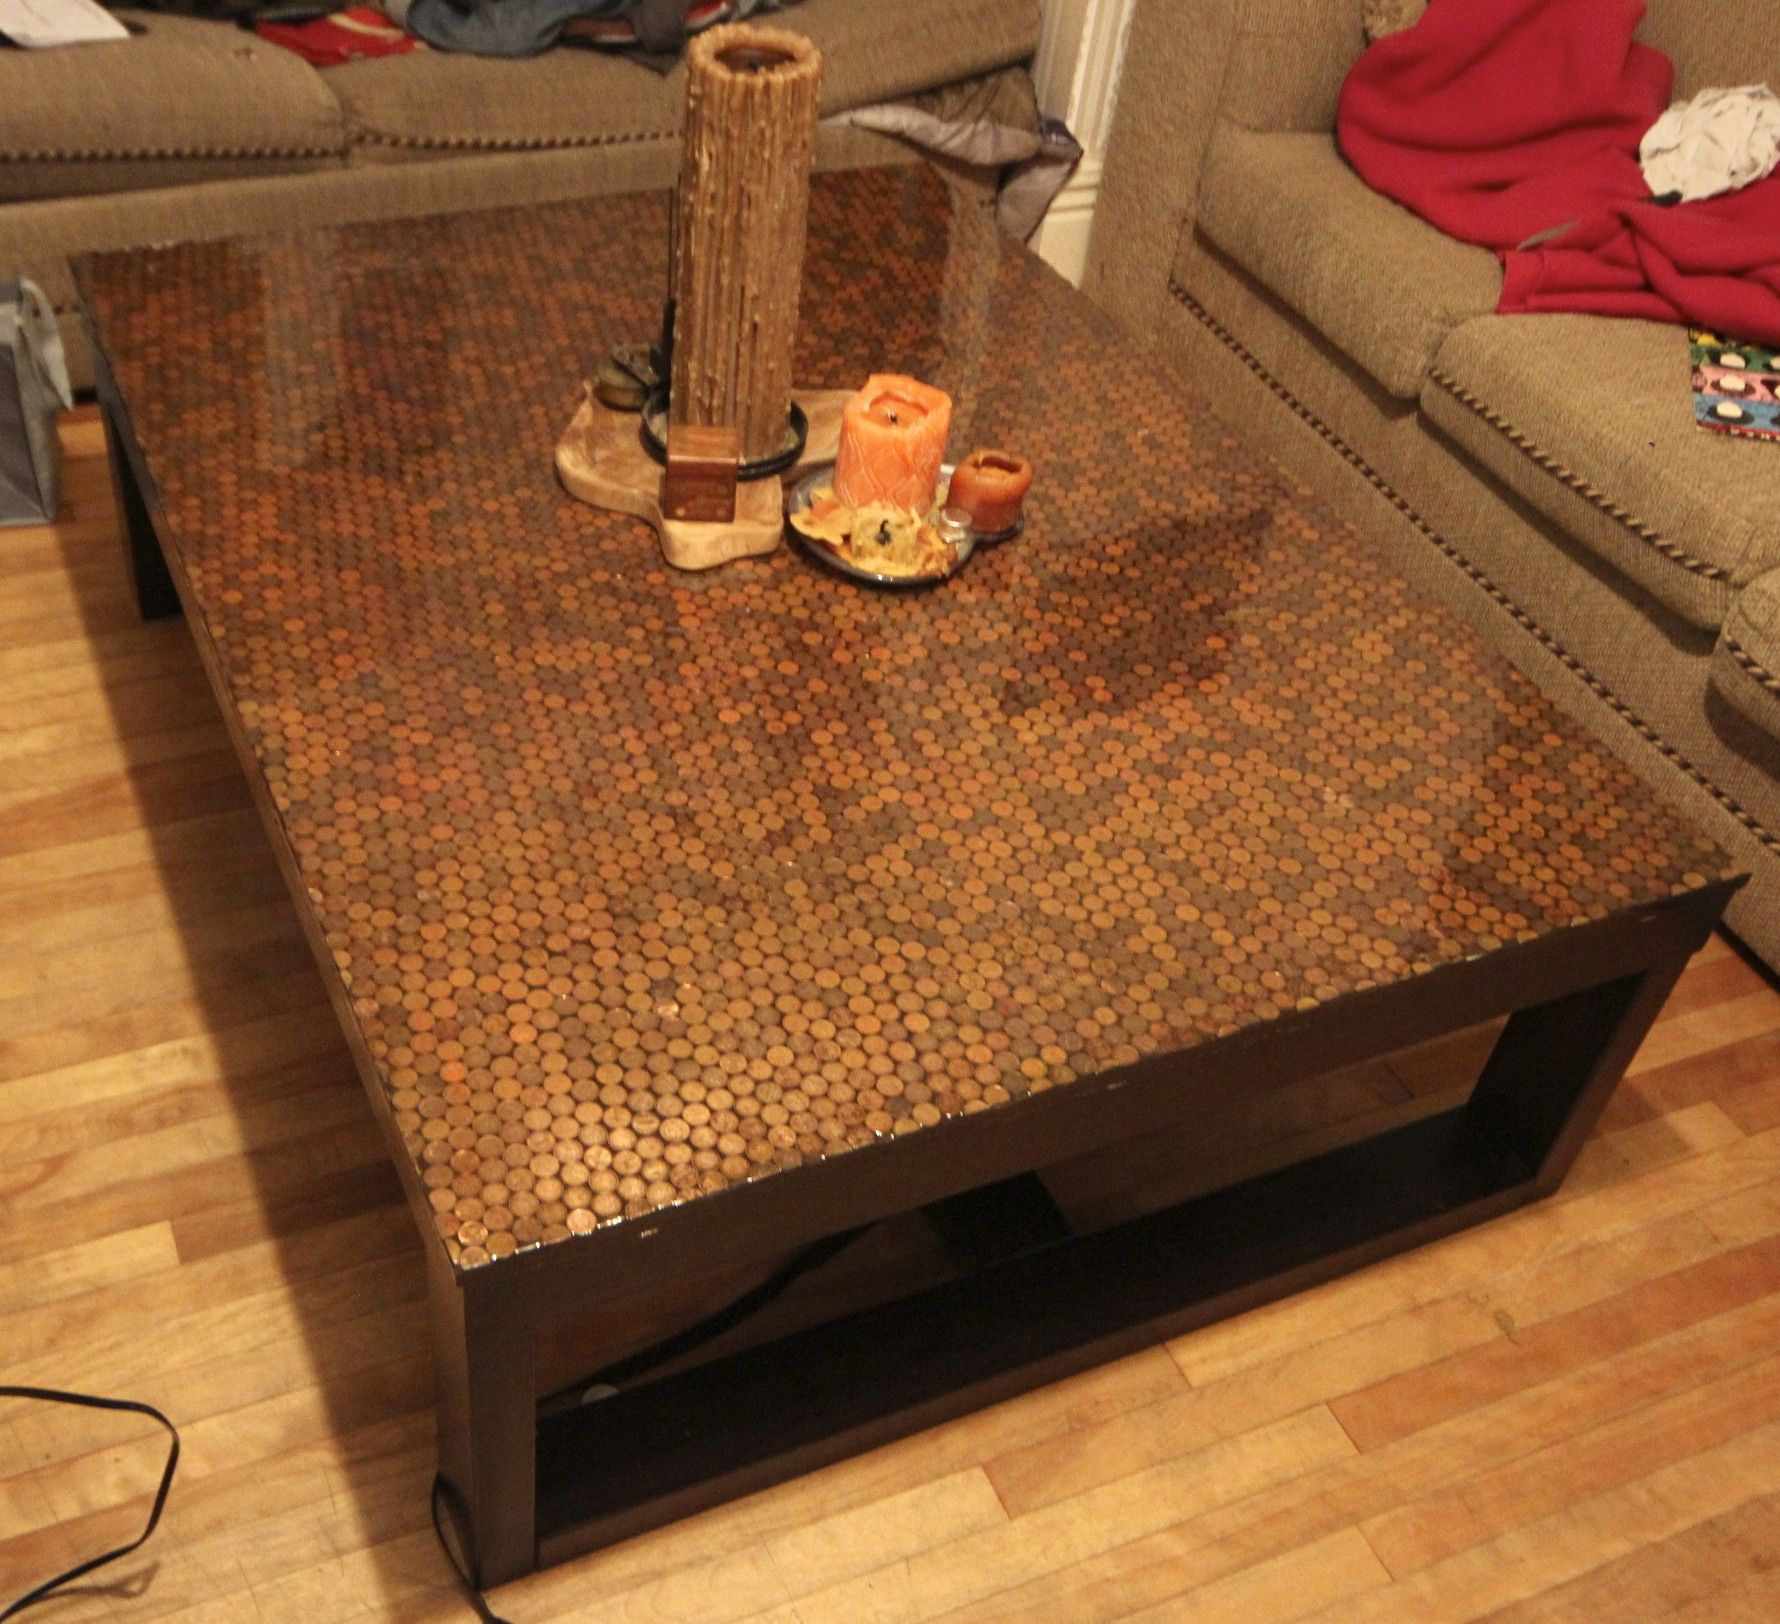 I Covered My Coffee Table With 4500 Pennies It Took About 25